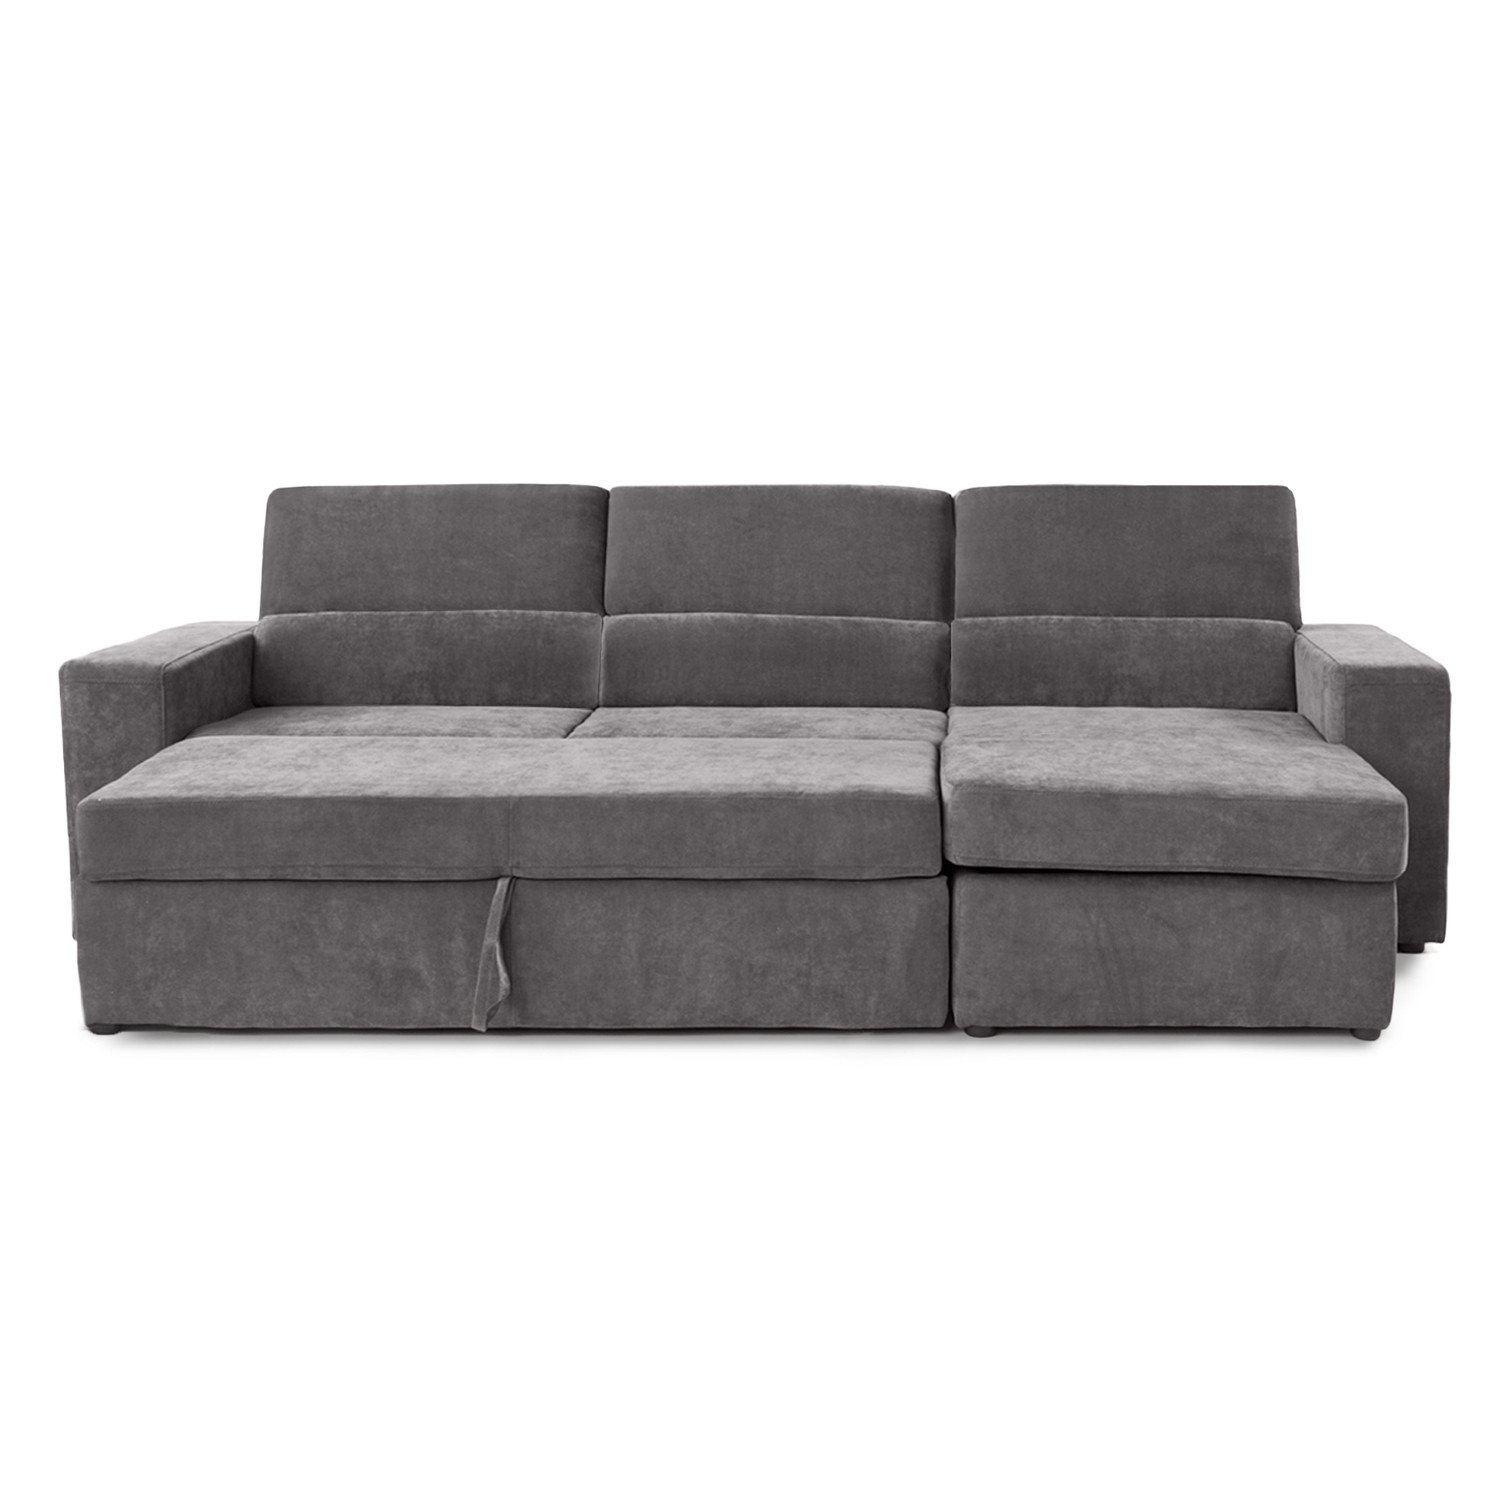 Clubber sofa bed american hwy for Clubber sofa bed